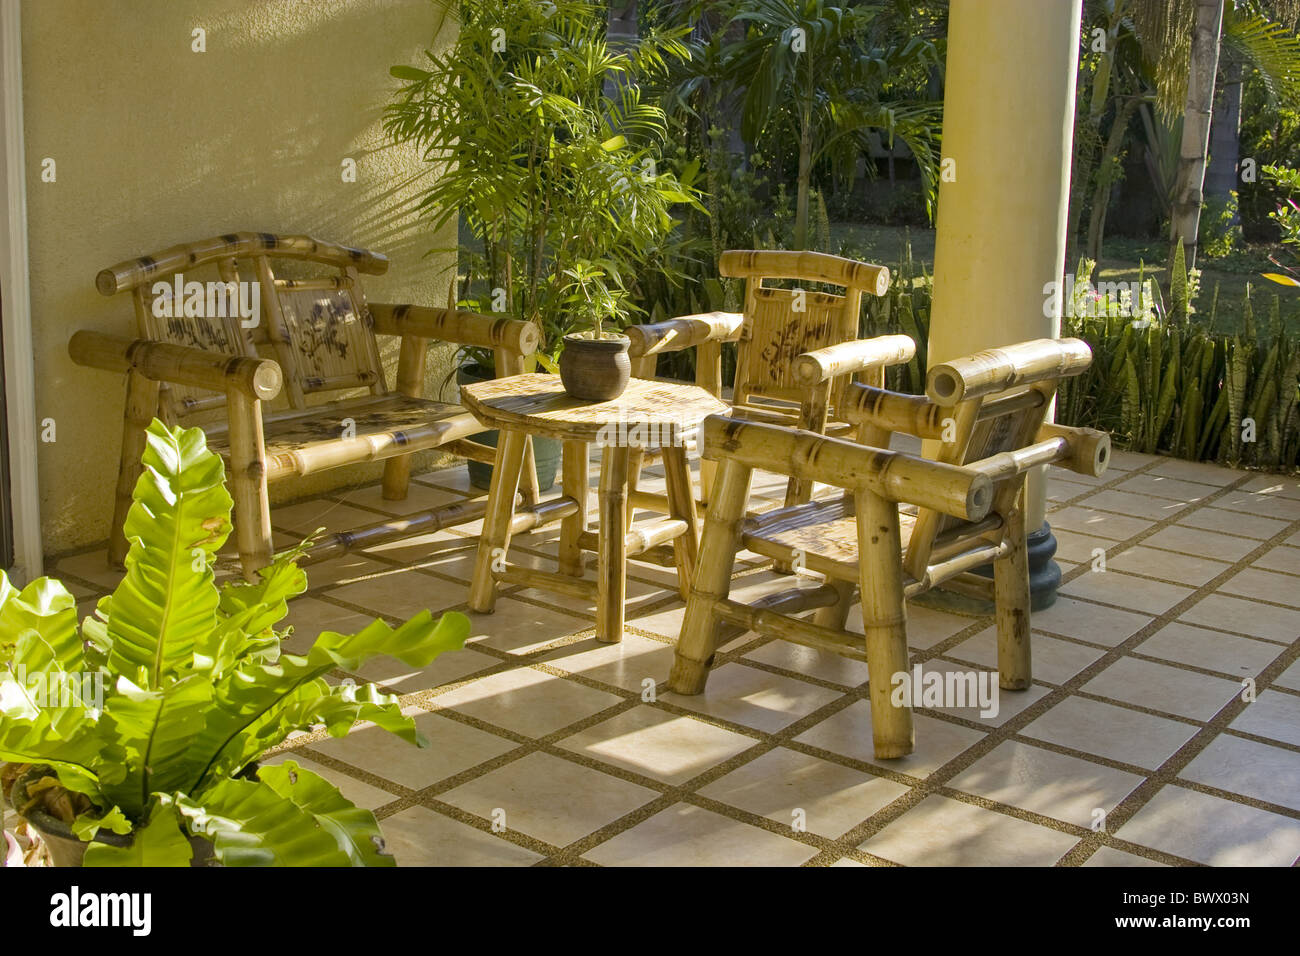 Garden furniture chairs table made from bamboo. Garden furniture chairs table made from bamboo Stock Photo